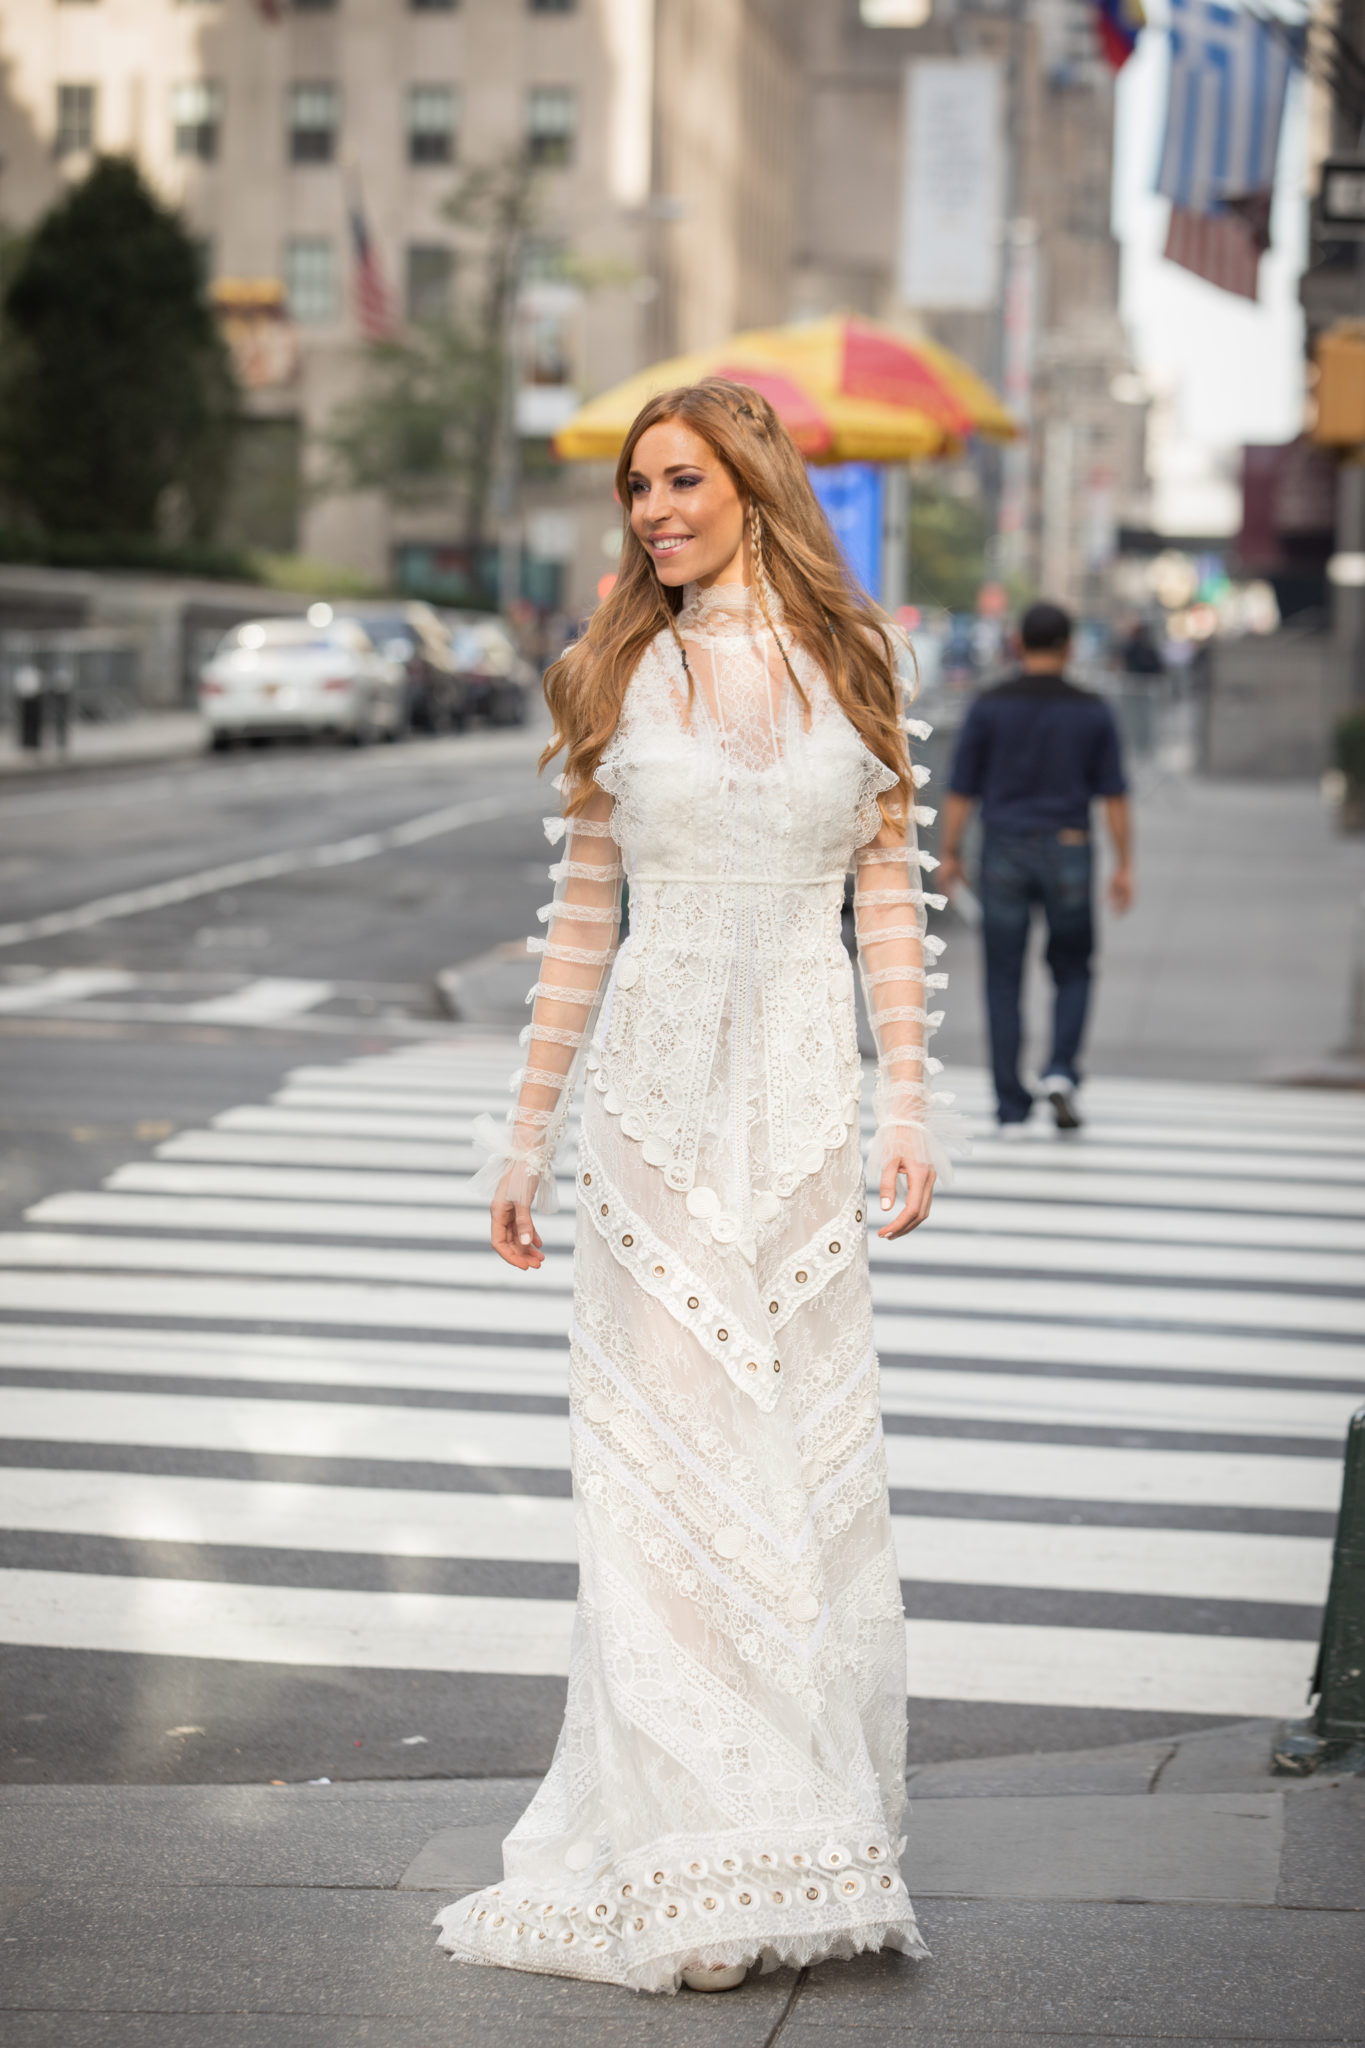 YolanCris in the city: shooting on the streets of NYC